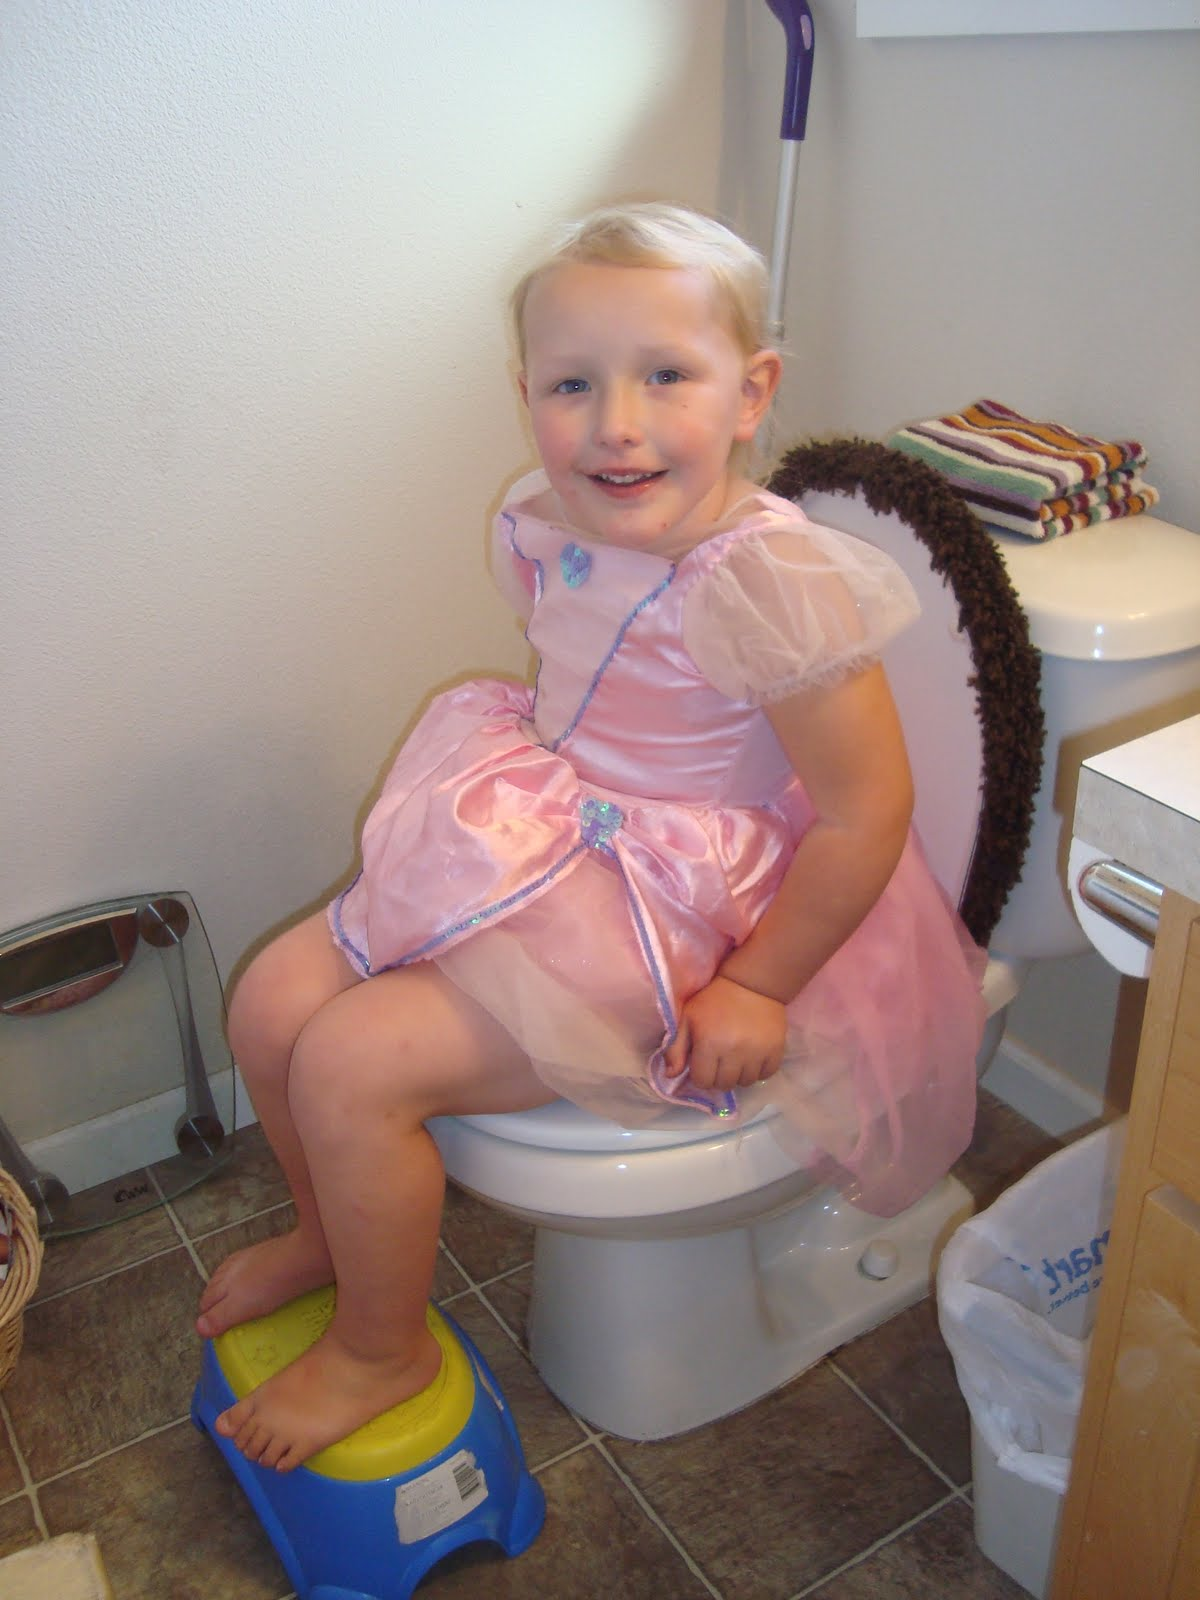 Potty training in 3 days scam